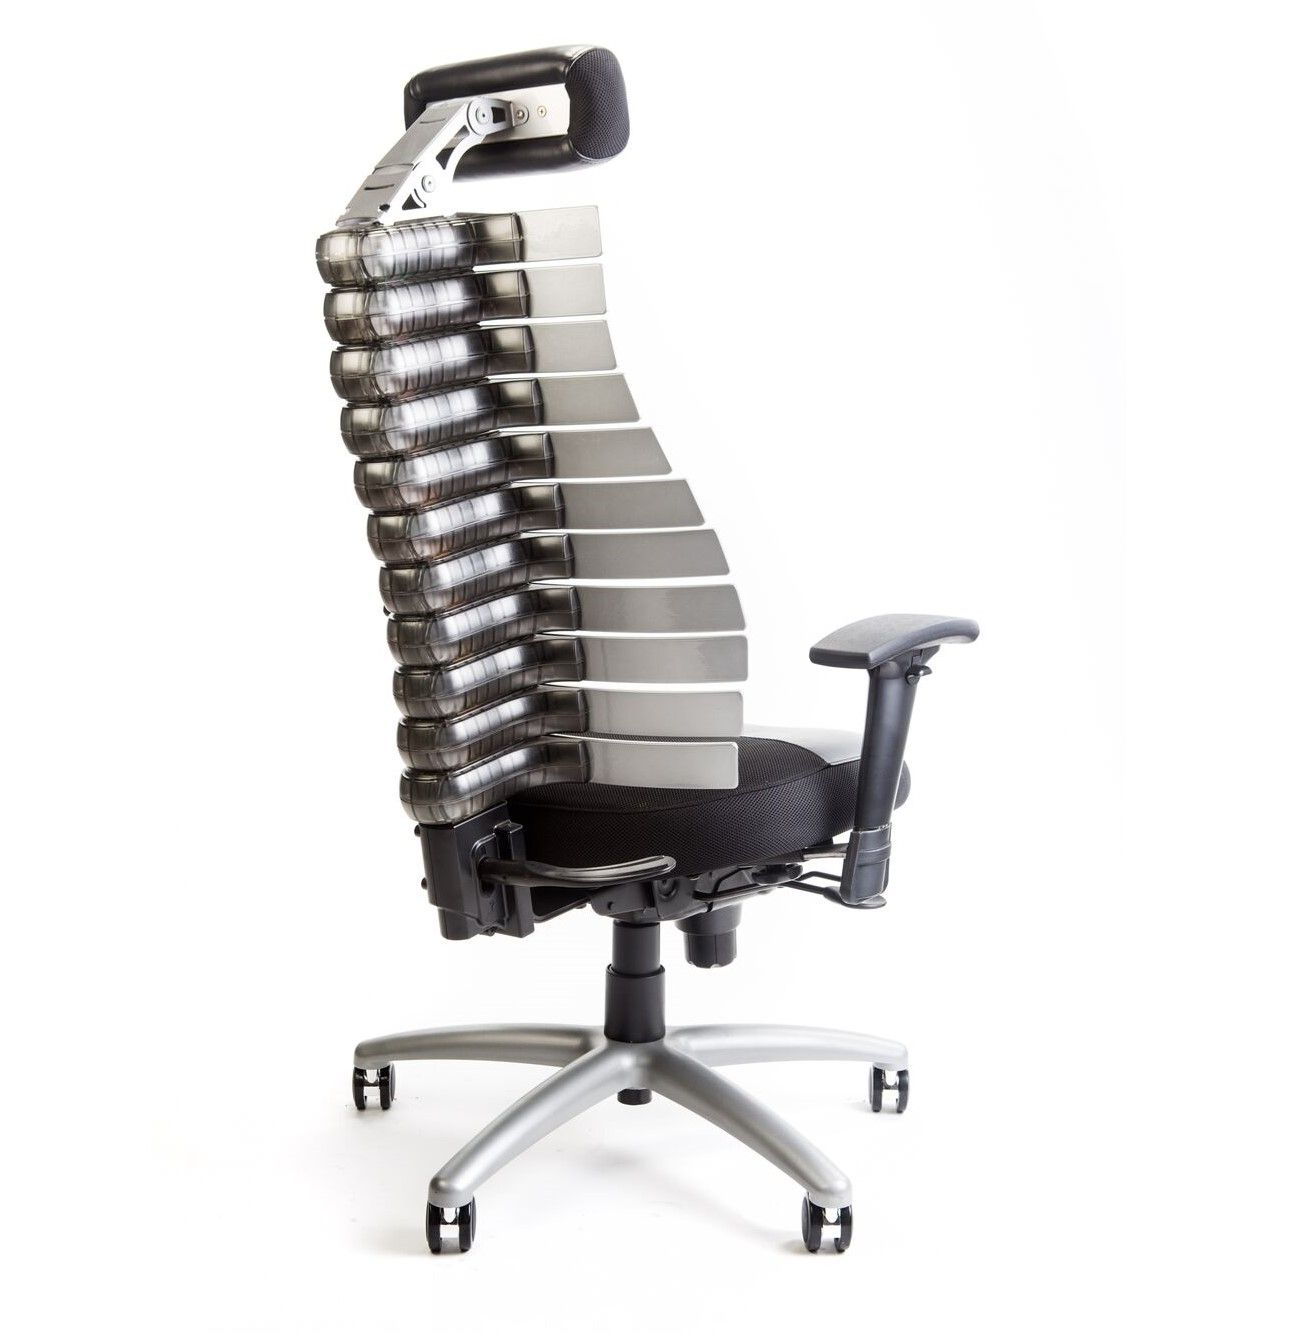 VERTE CHAIR W/SELF ADJUSTING BACK FOR ALL DAY COMFORT ALL THE WAY TO THE BONE! ERGONOMIC HOME HAS YOUR BACK. FREE SHIPPING: